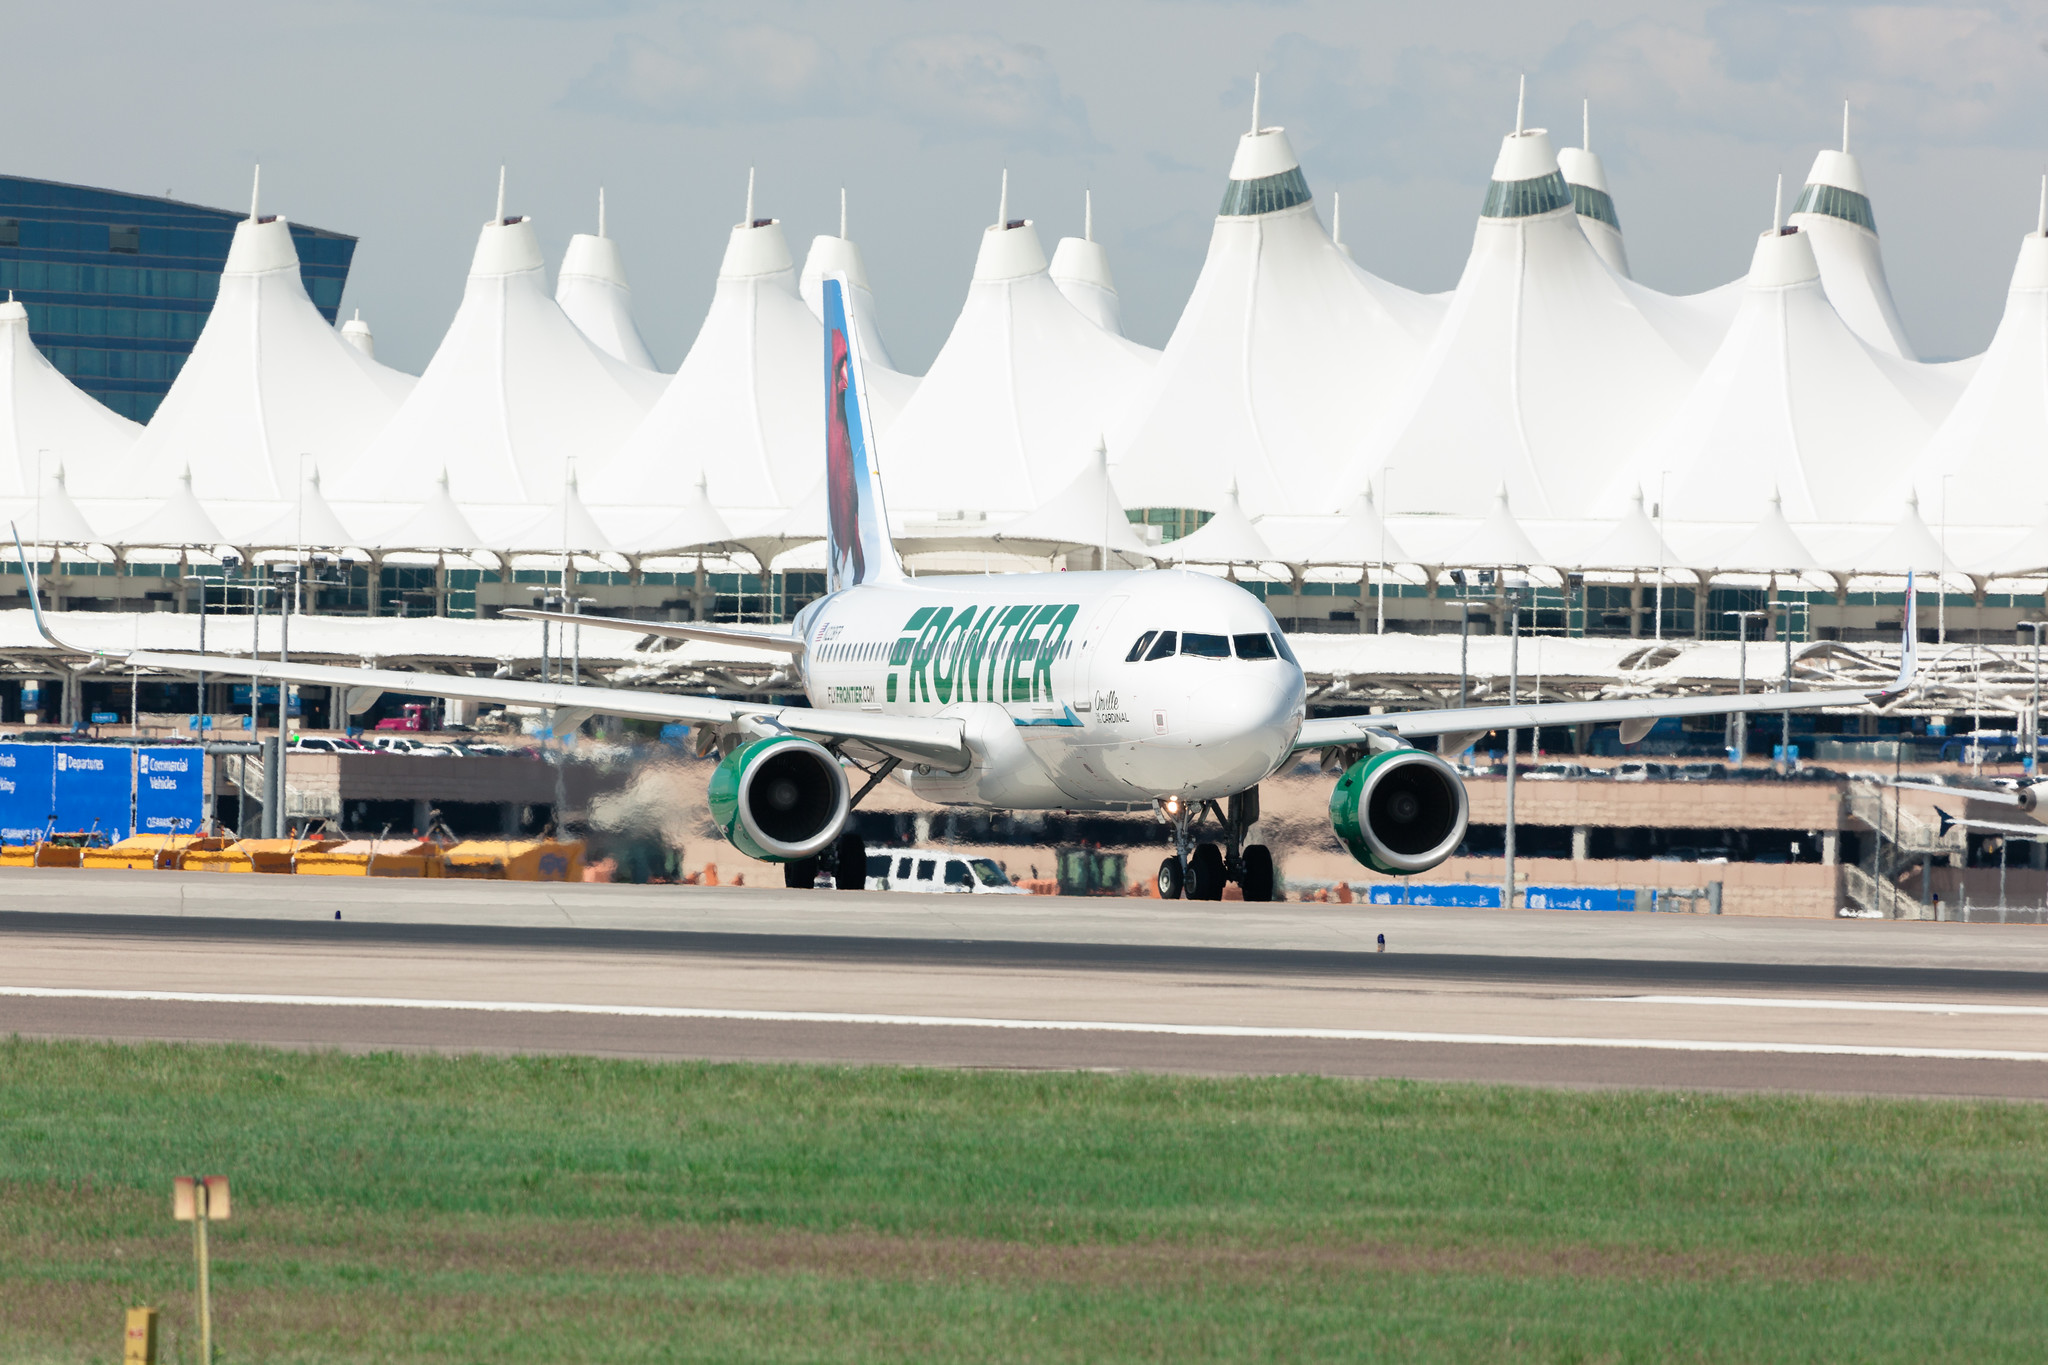 Frontier flight taxiing at its hub in Denver. Image by flydenver.com